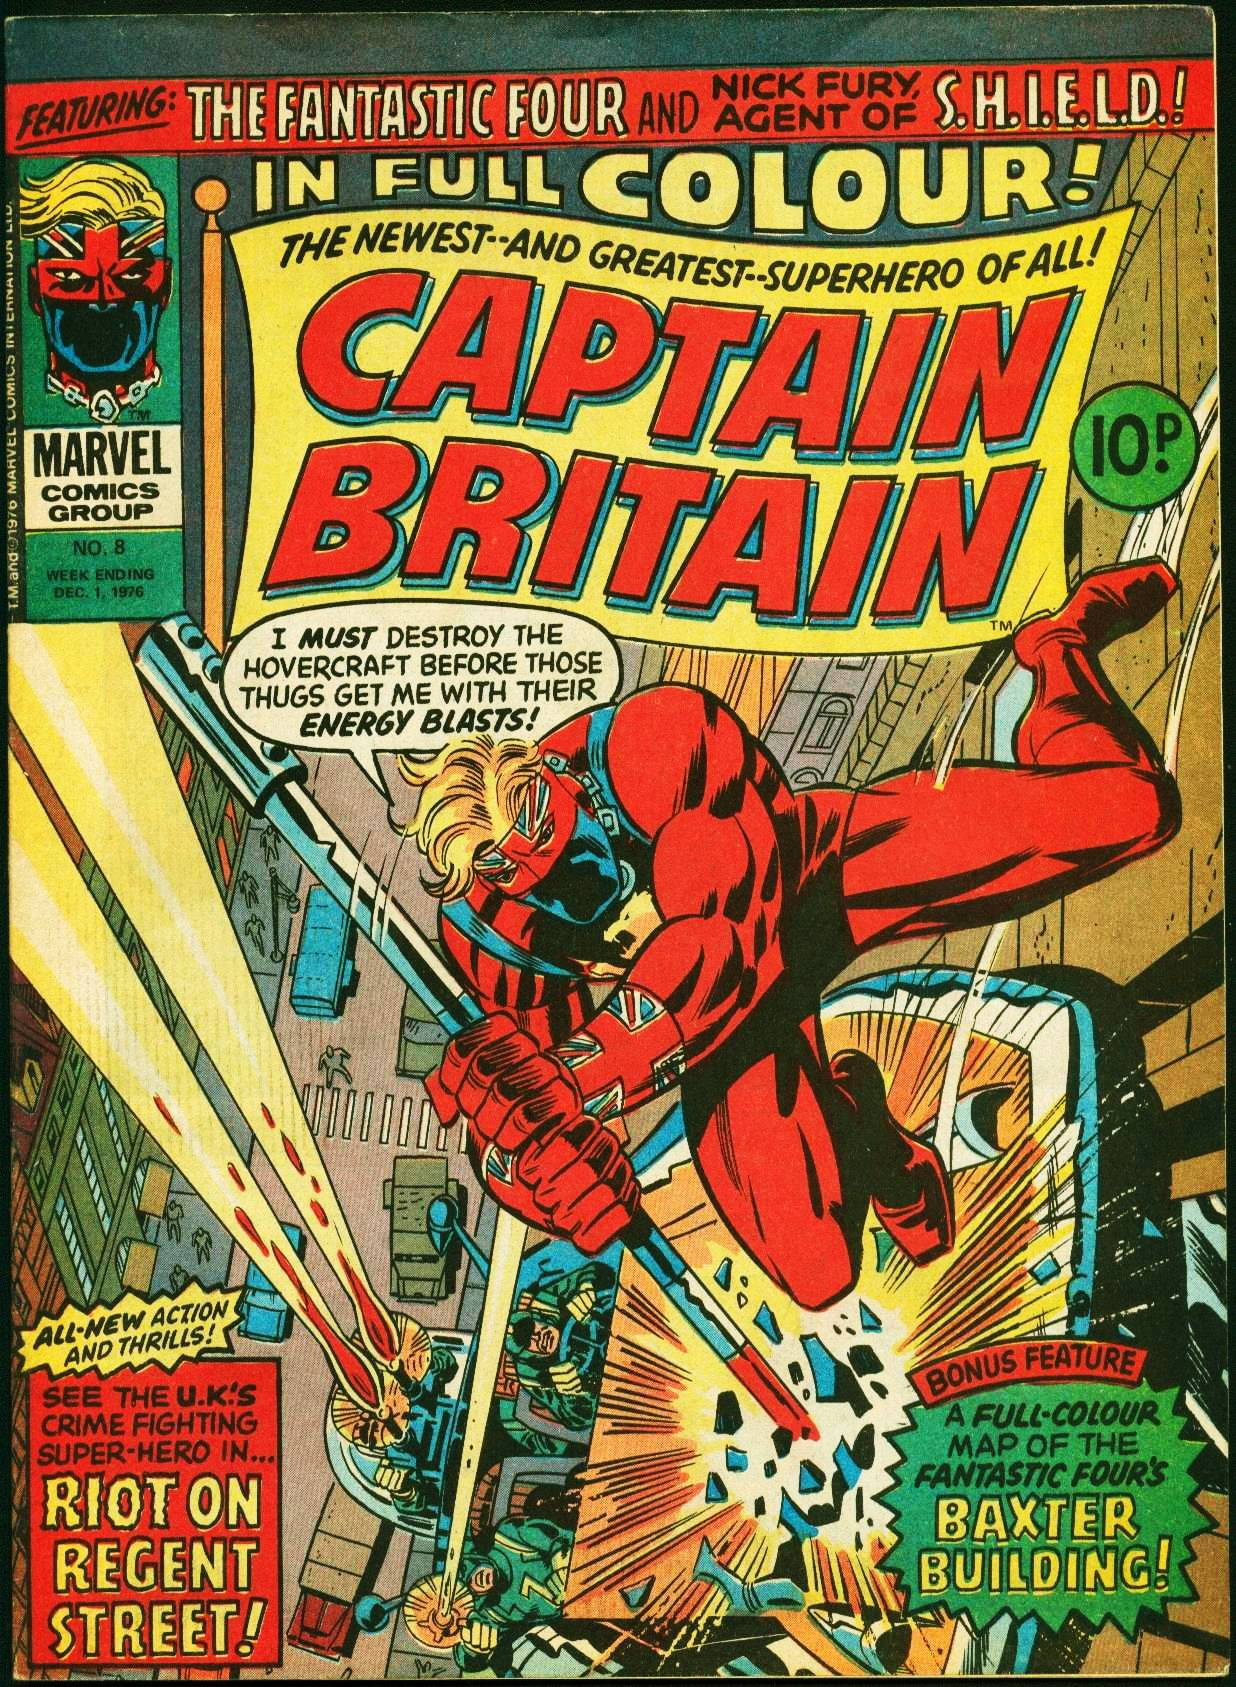 In Memoriam: Herb Trimpe, co-creator of Captain Britain